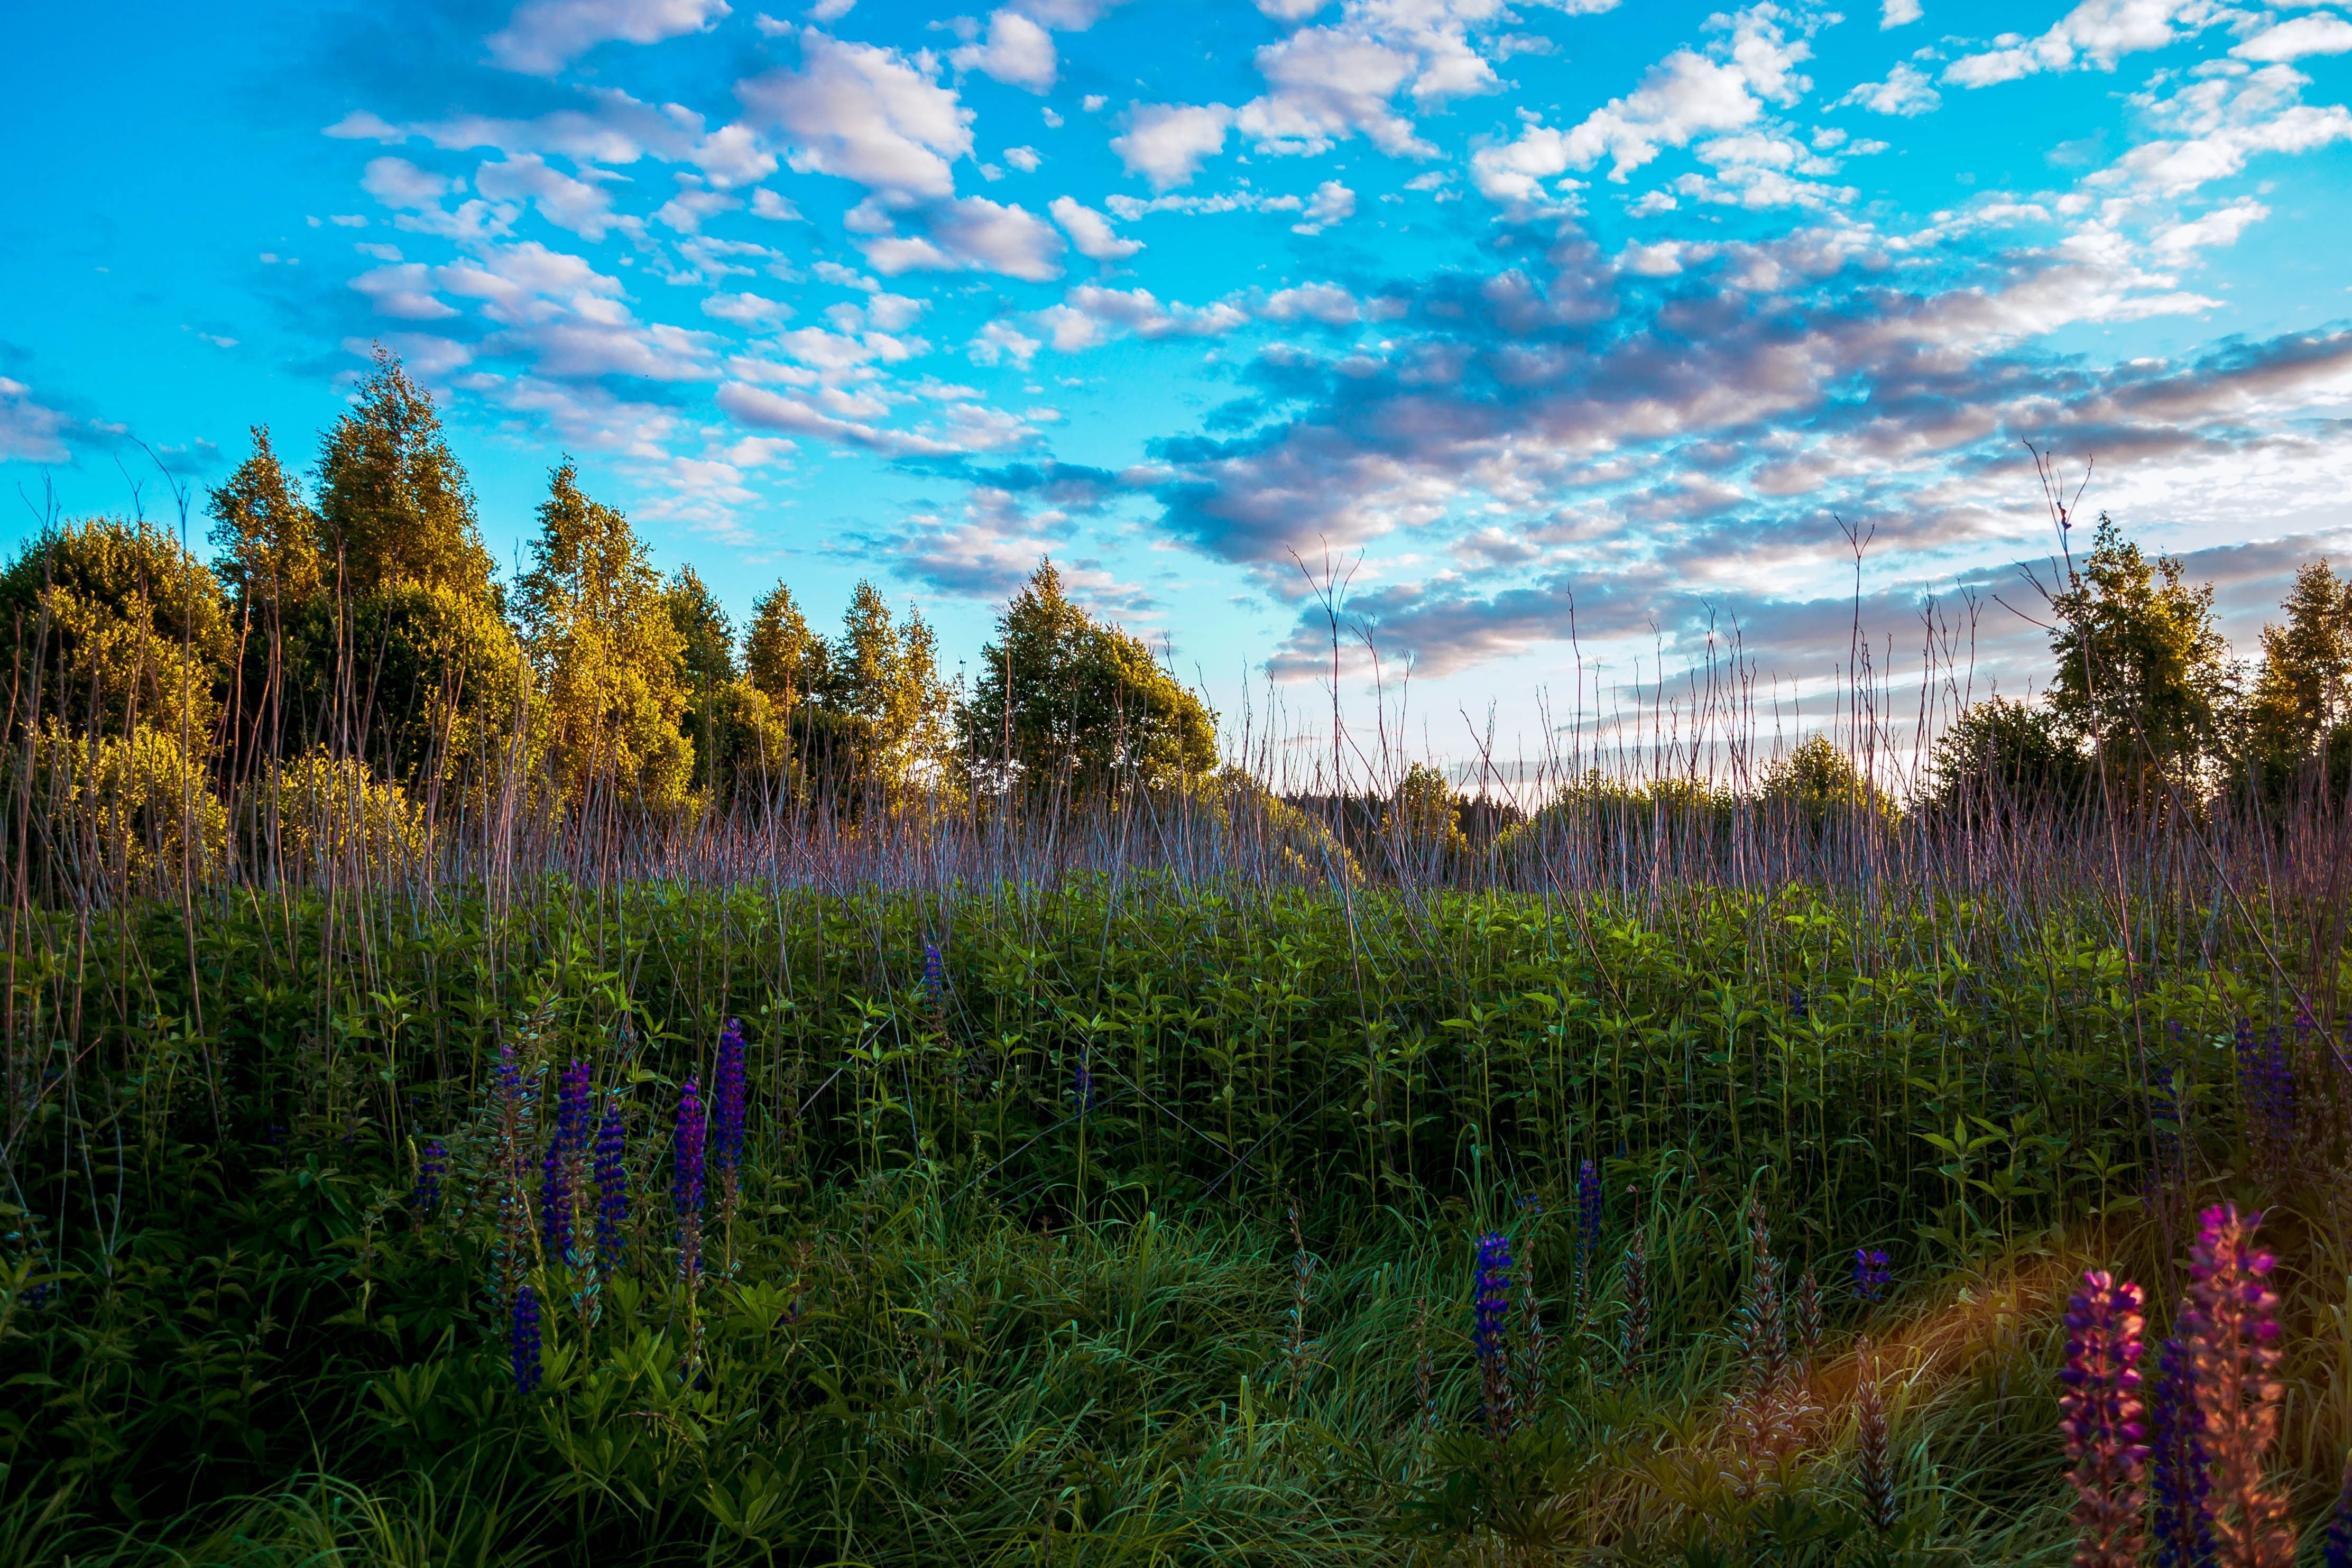 Tall trees and grasses photo